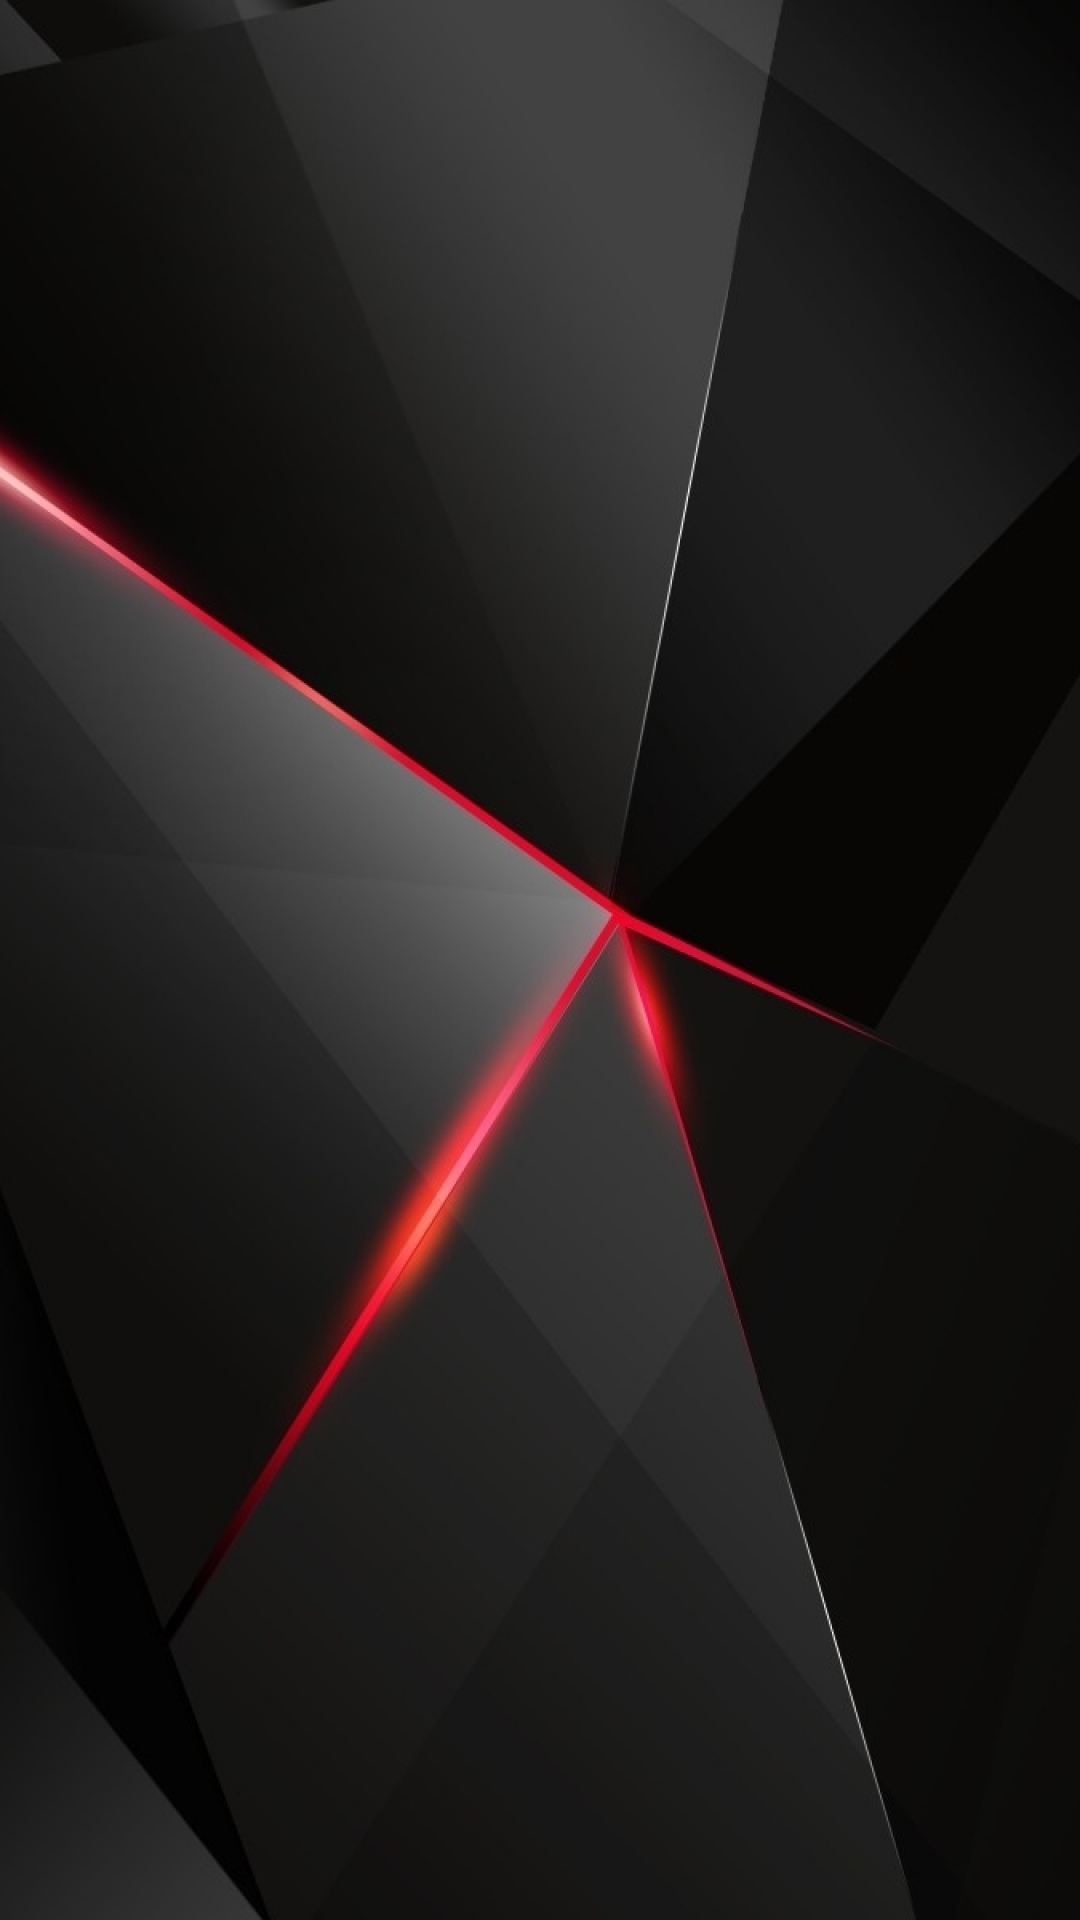 Sony Xperia Z1, ZL, Z, Samsung Galaxy S4, HTC One Black Wallpapers